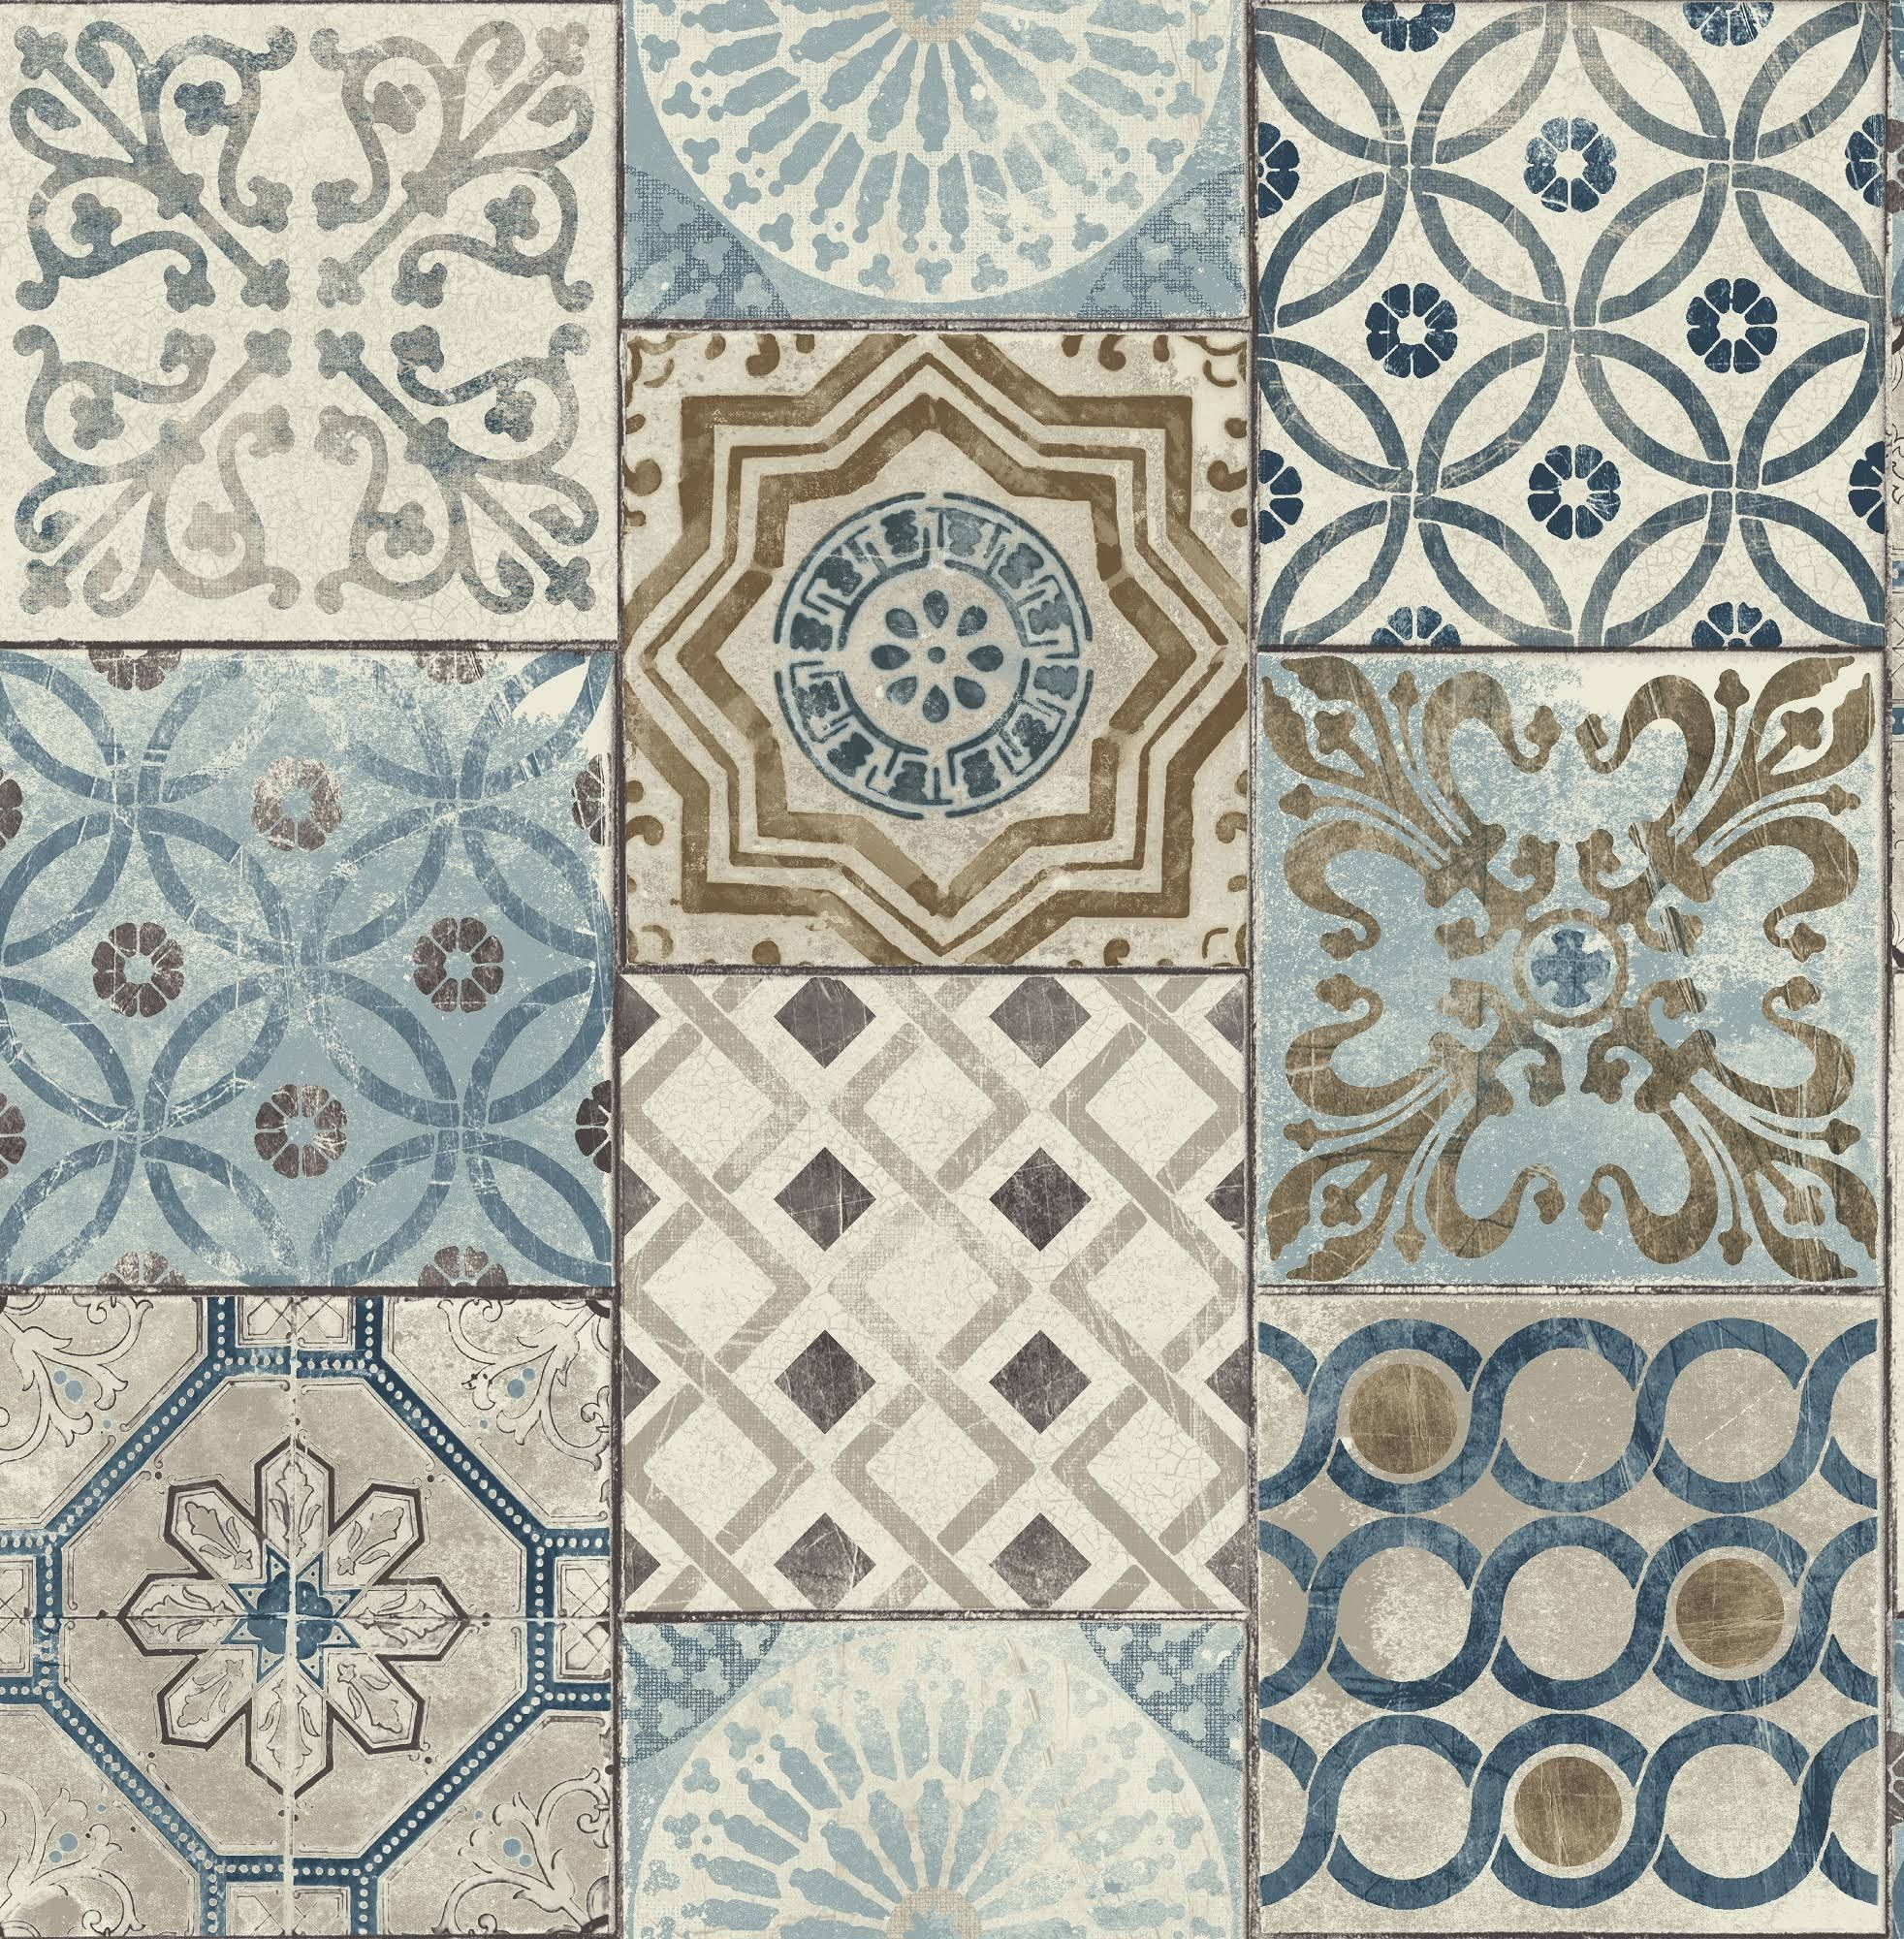 Nextwall Moroccan Style Peel And Stick Mosaic Tile Wallpaper Blue Copper Grey Google Shopping Moroccan Tile Peel And Stick Wallpaper Tile Wallpaper